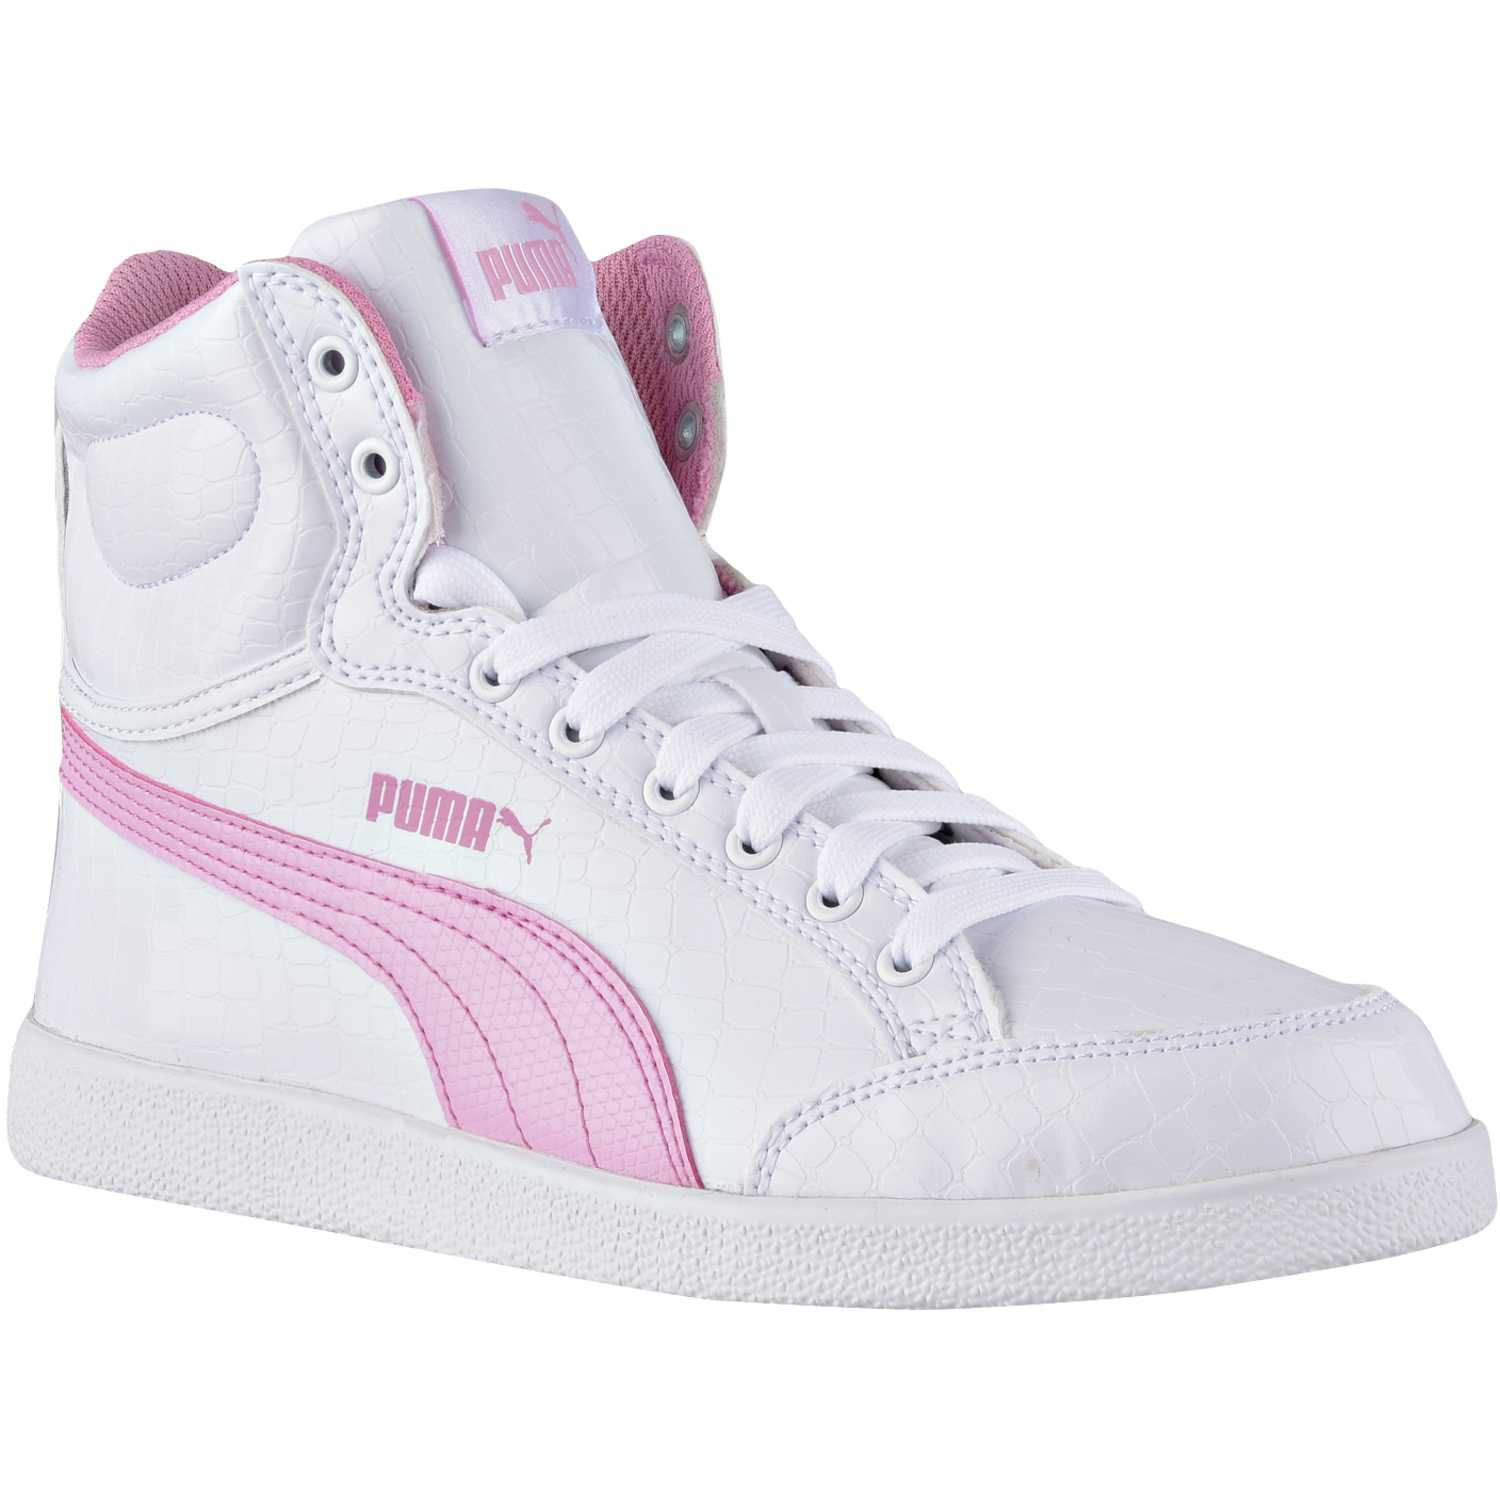 Puma ikaz mid serpent jr Blanco / rosado Walking